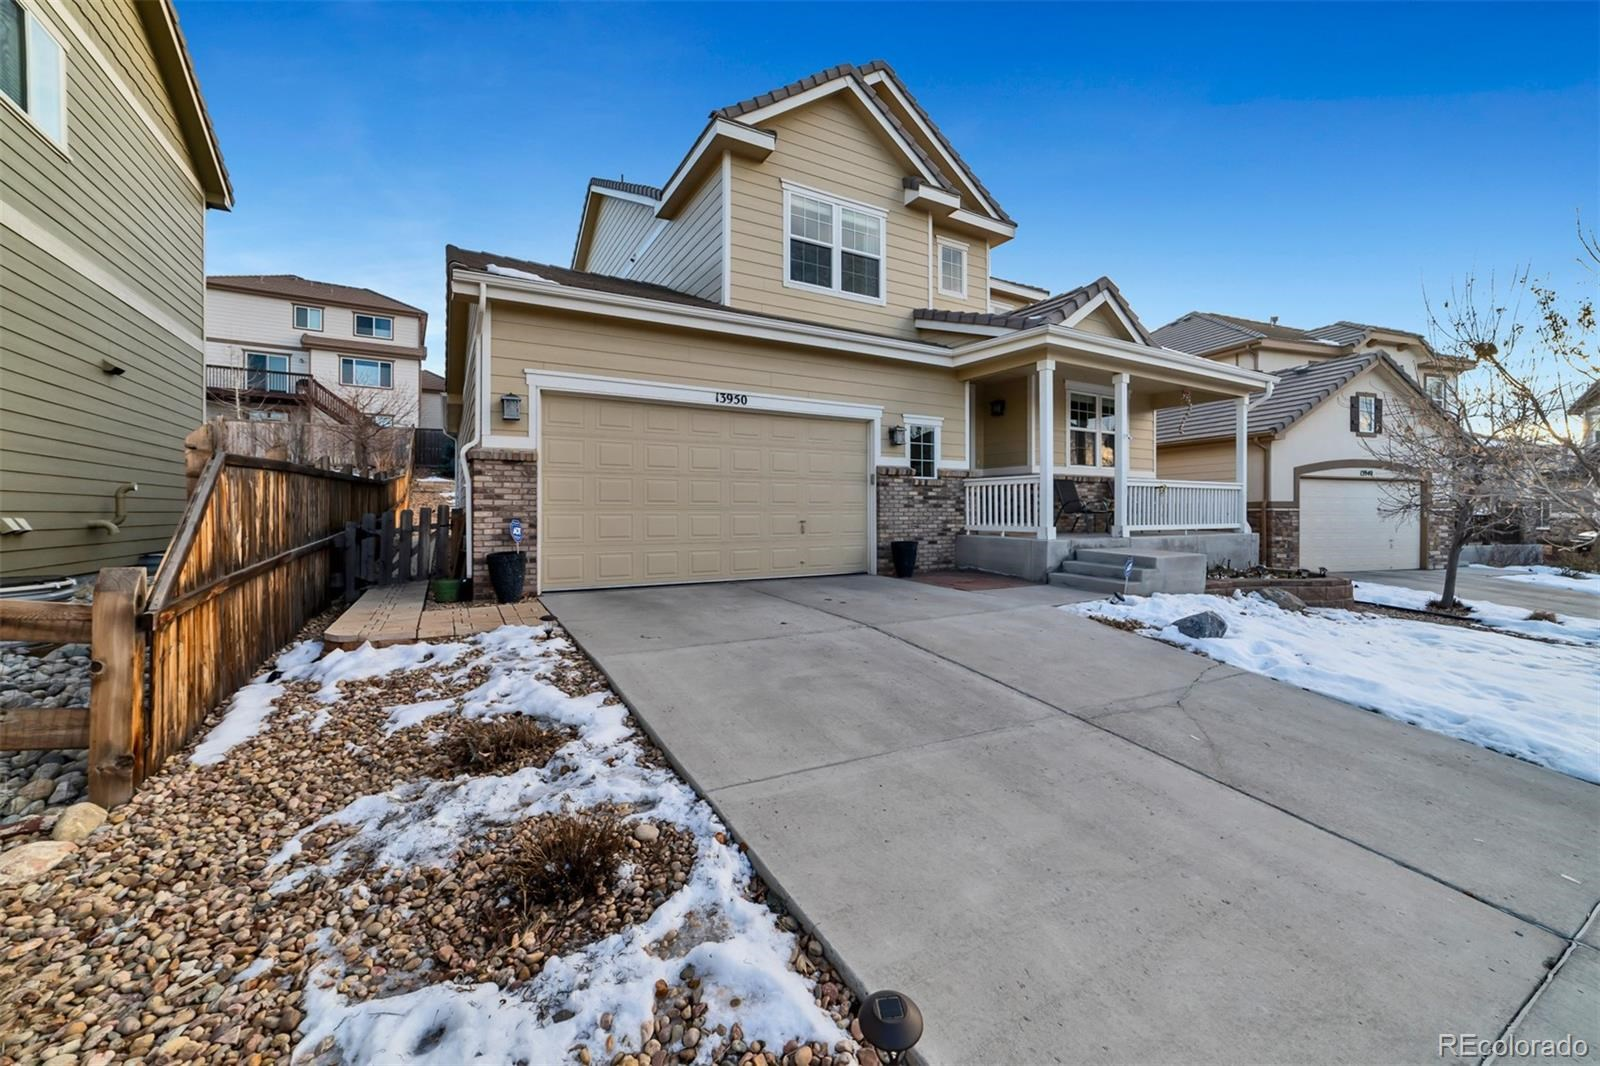 MLS# 8550062 - 3 - 13950 Eisberry Way, Parker, CO 80134